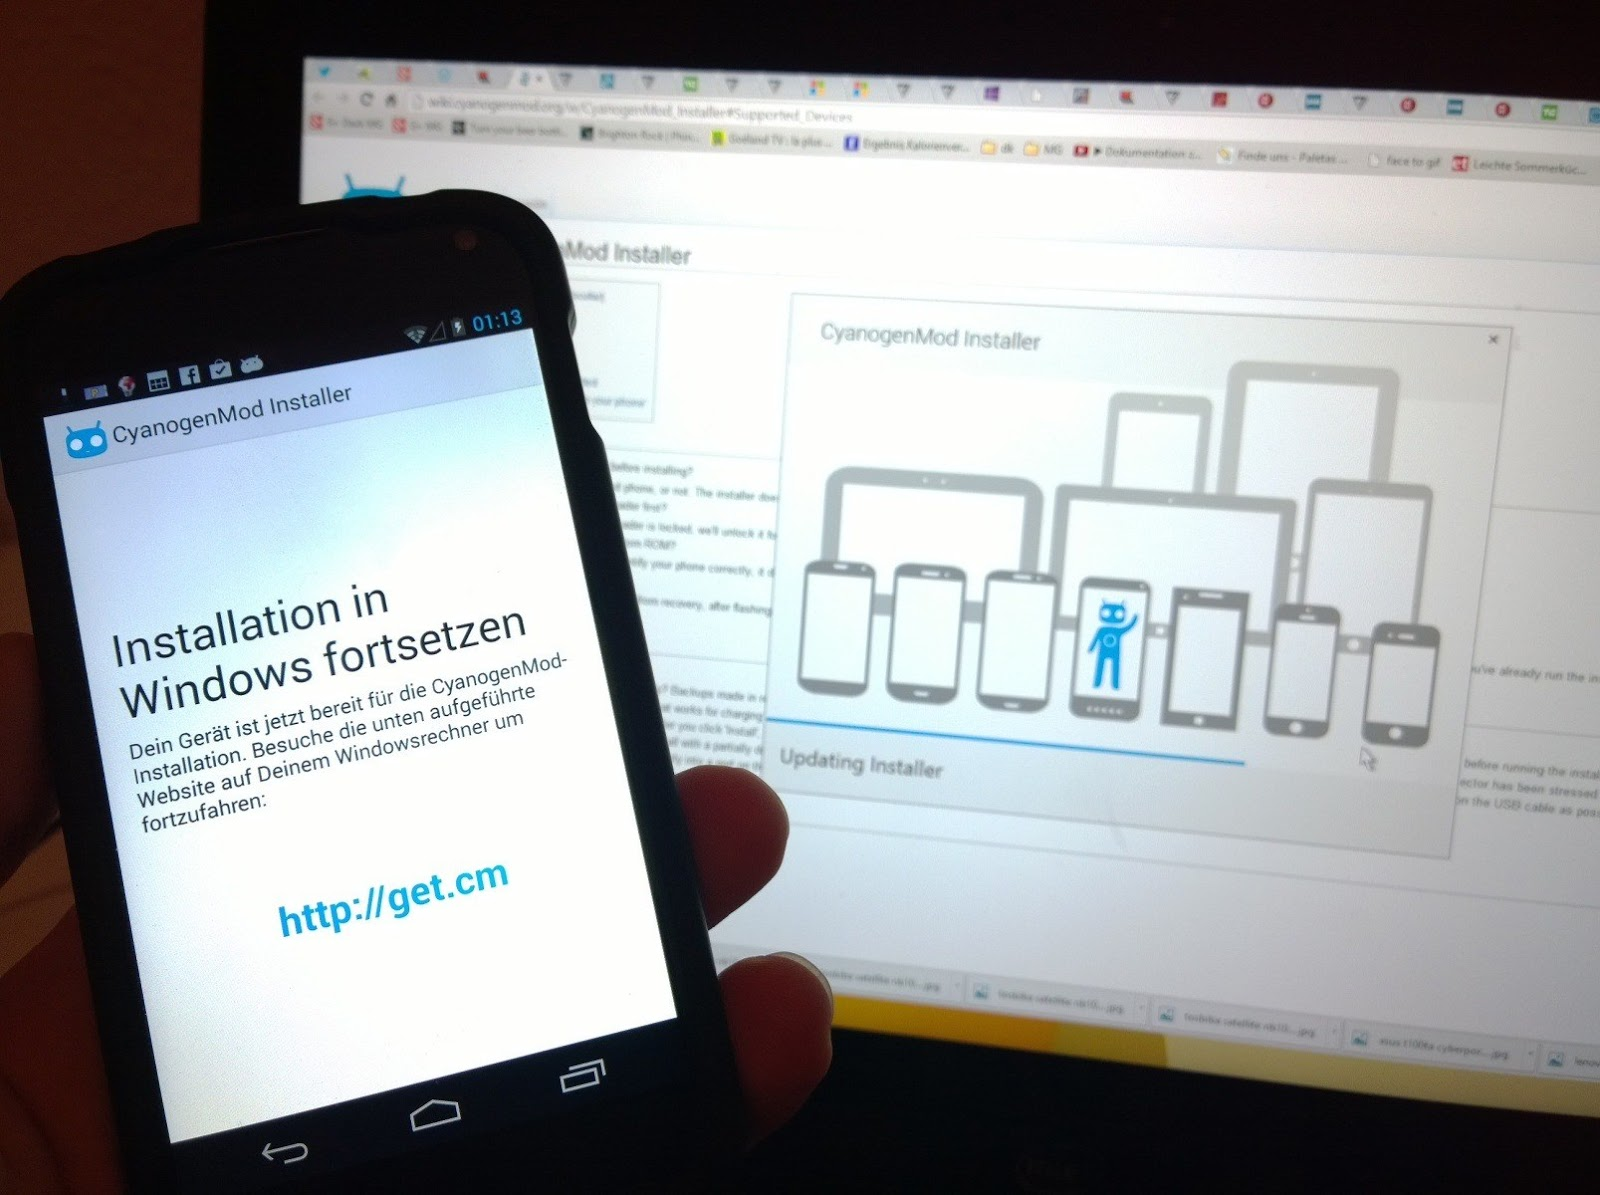 CyanogenMod Installer application pulled from Google Play Store